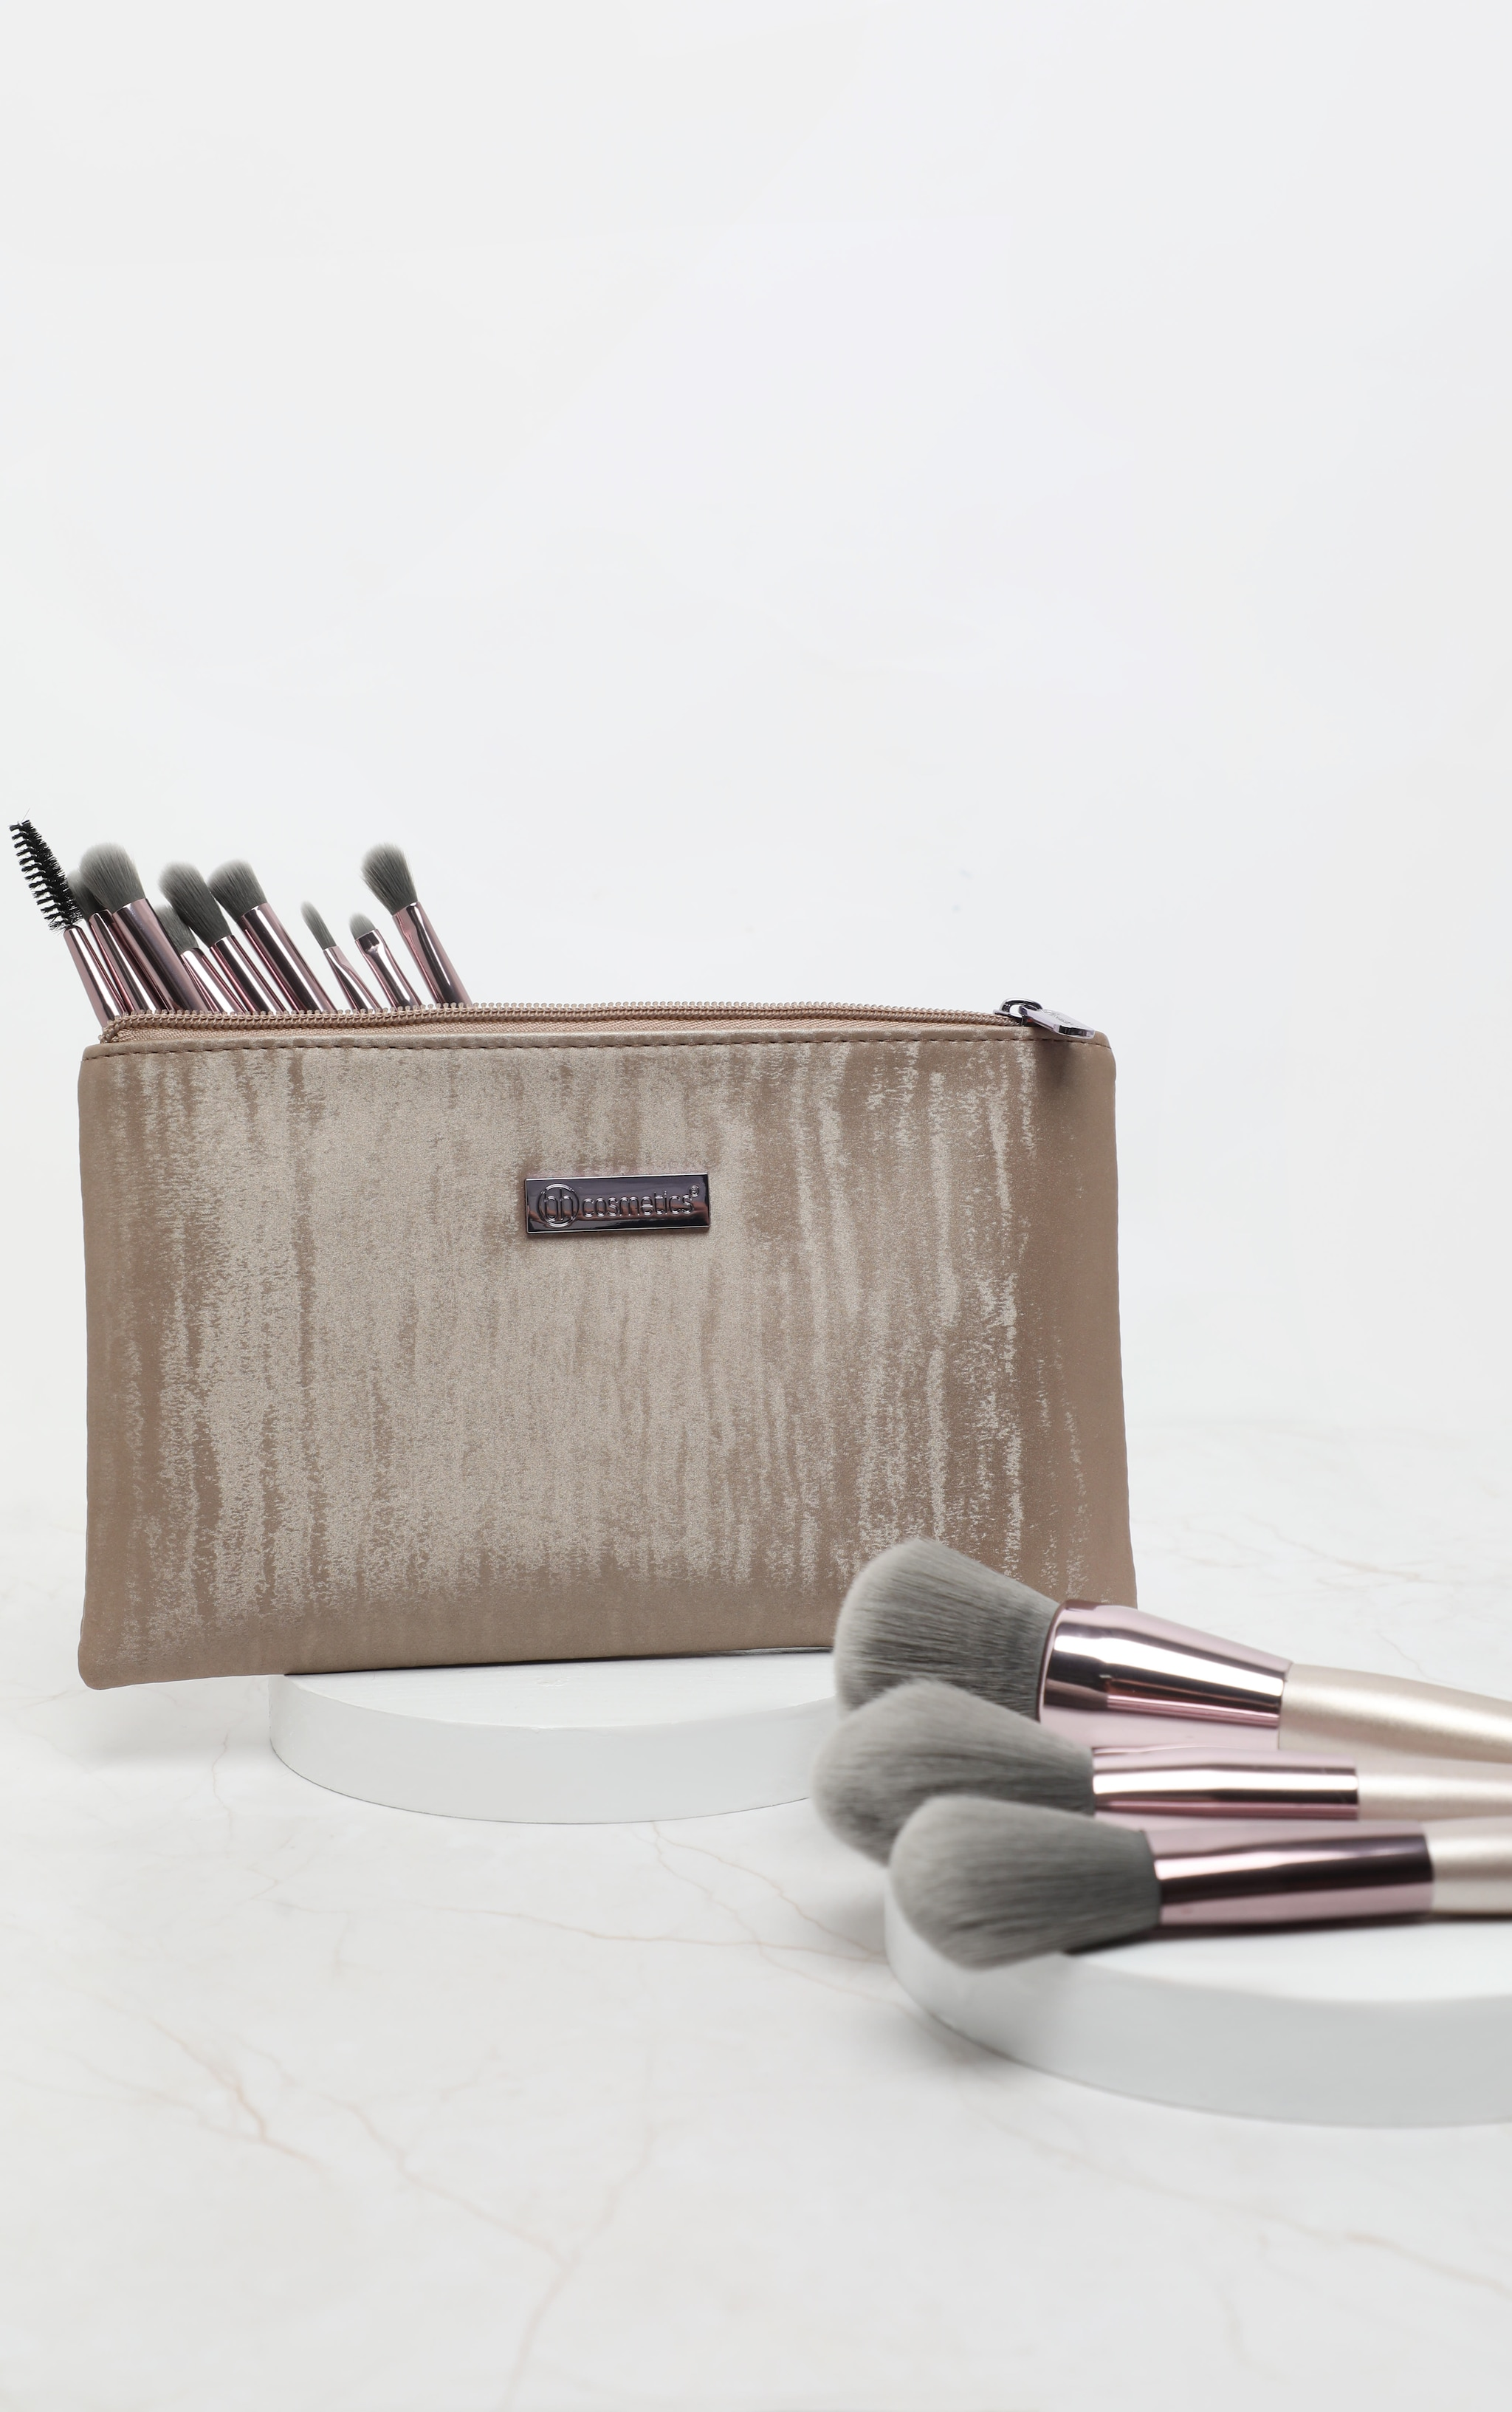 BH Cosmetics Lavish Elegance 15 Piece Brush Set with Bag 2